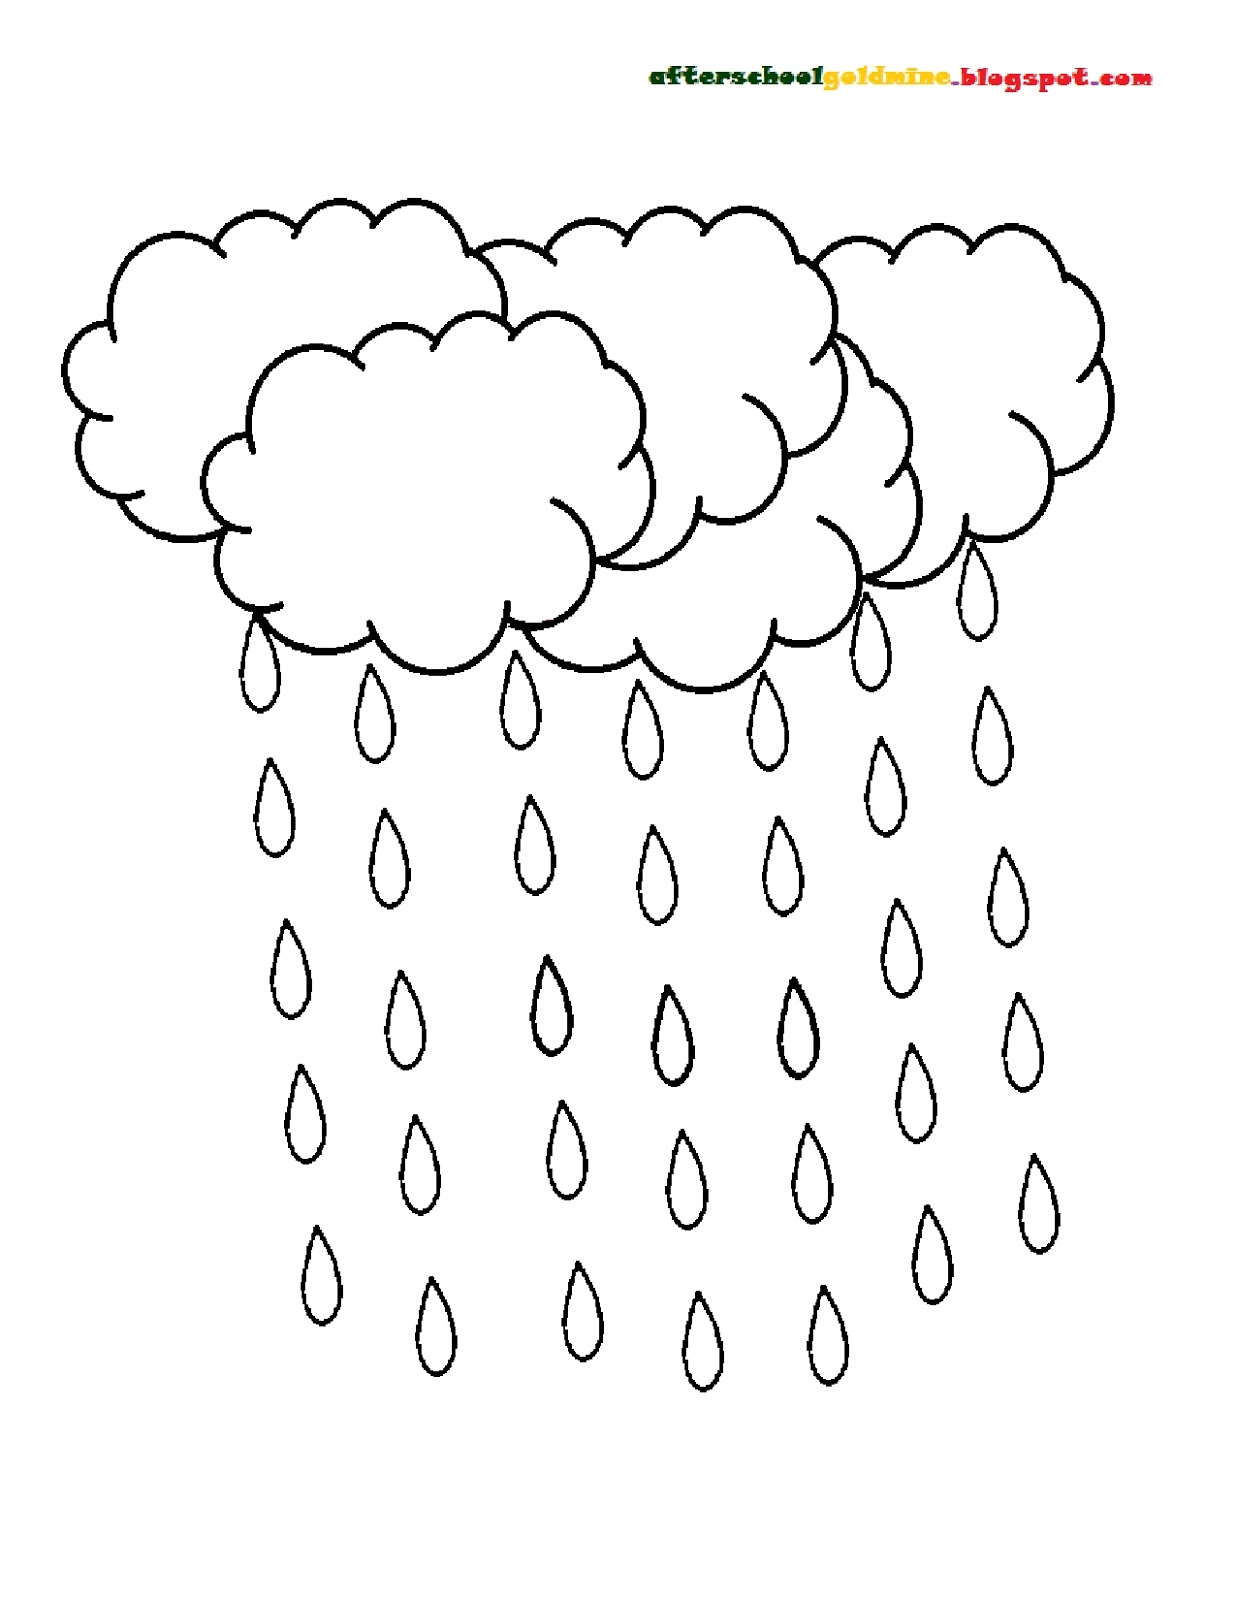 The Best Free Raindrop Coloring Page Images Download From